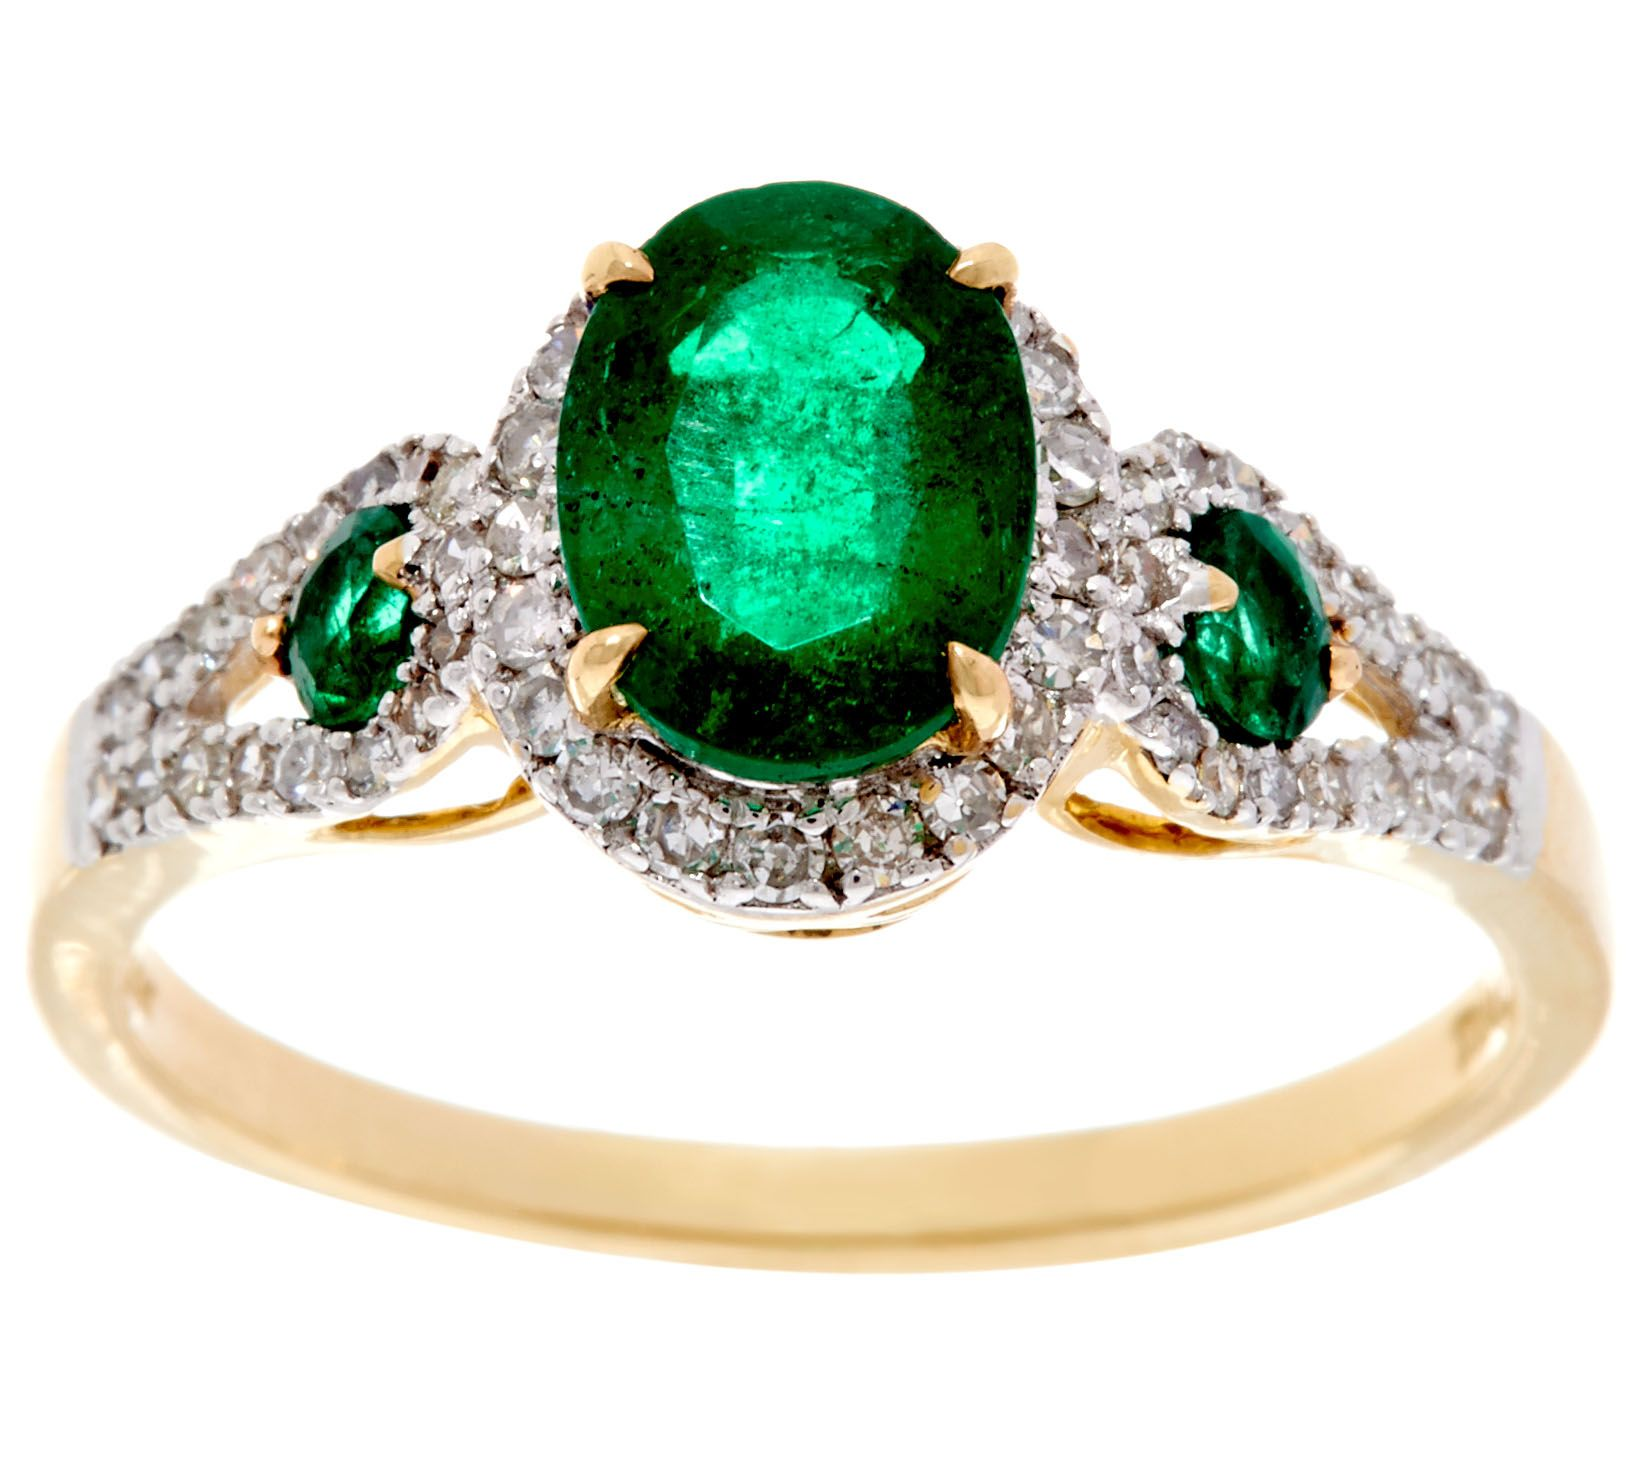 stones precious stone rings soon ltd semi pte engagement ngee img